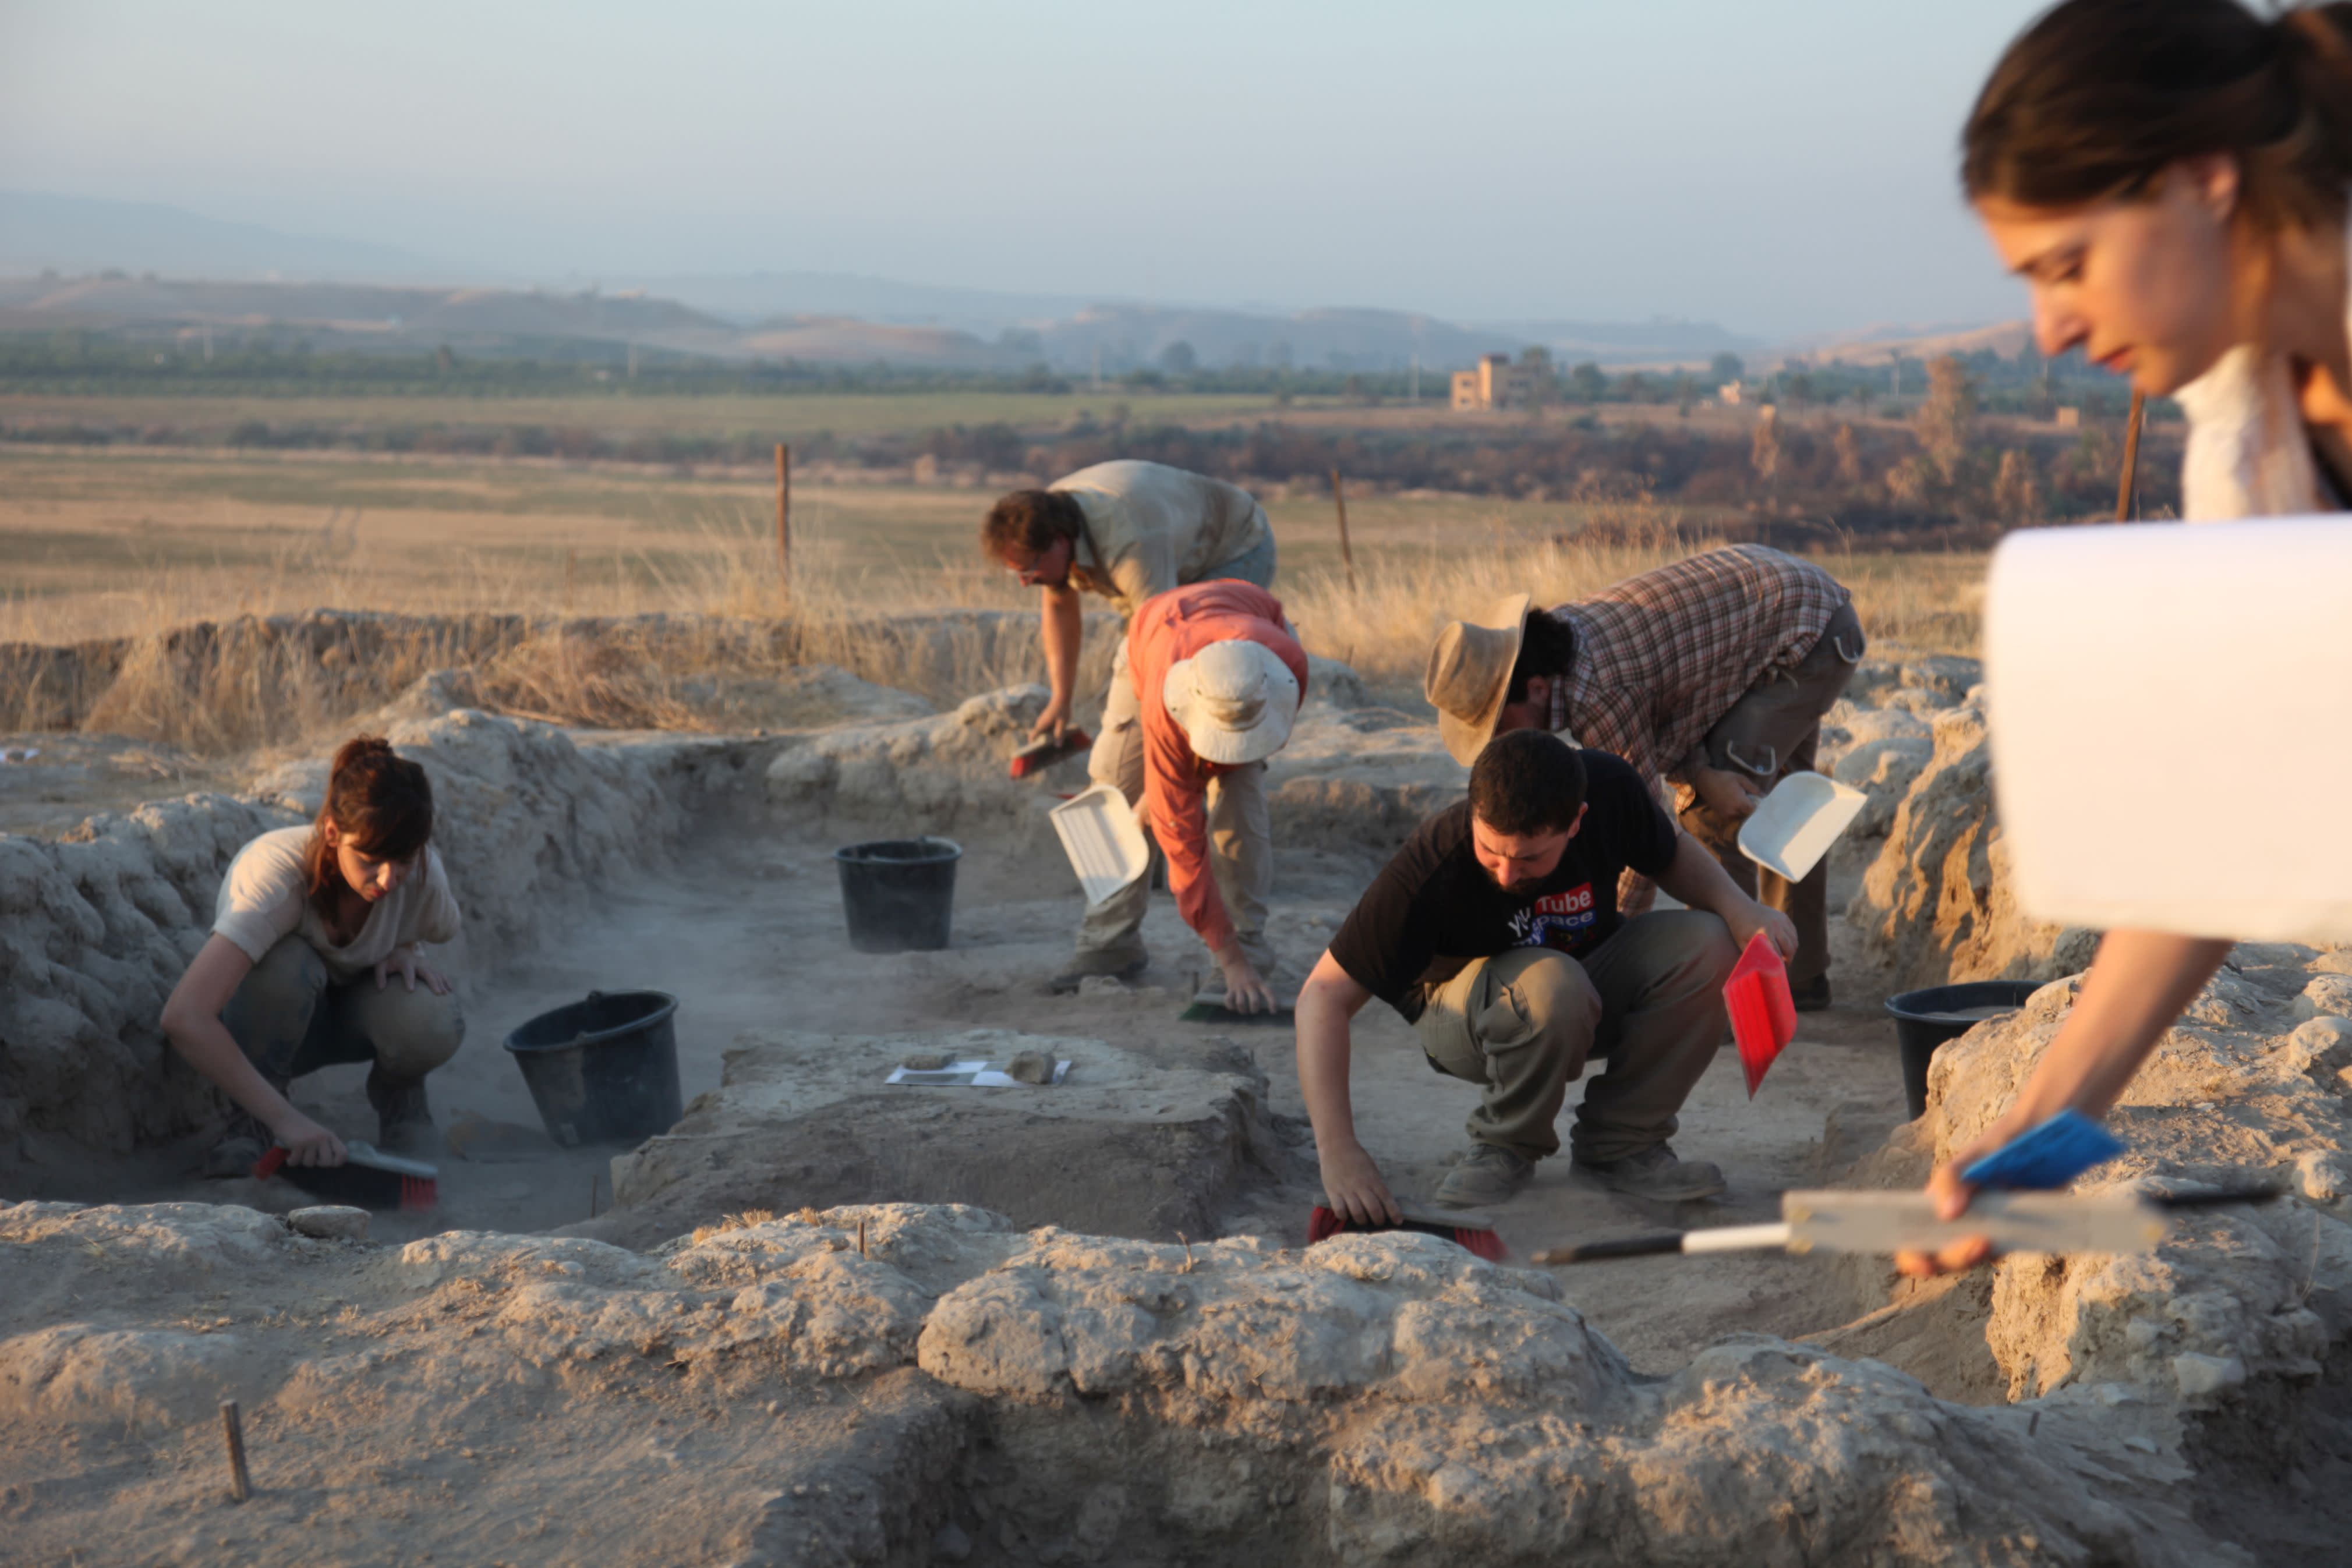 Archeologists working at the Tel Tsaf excavation site near the Jordan River. (Courtesy of University of Haifa)